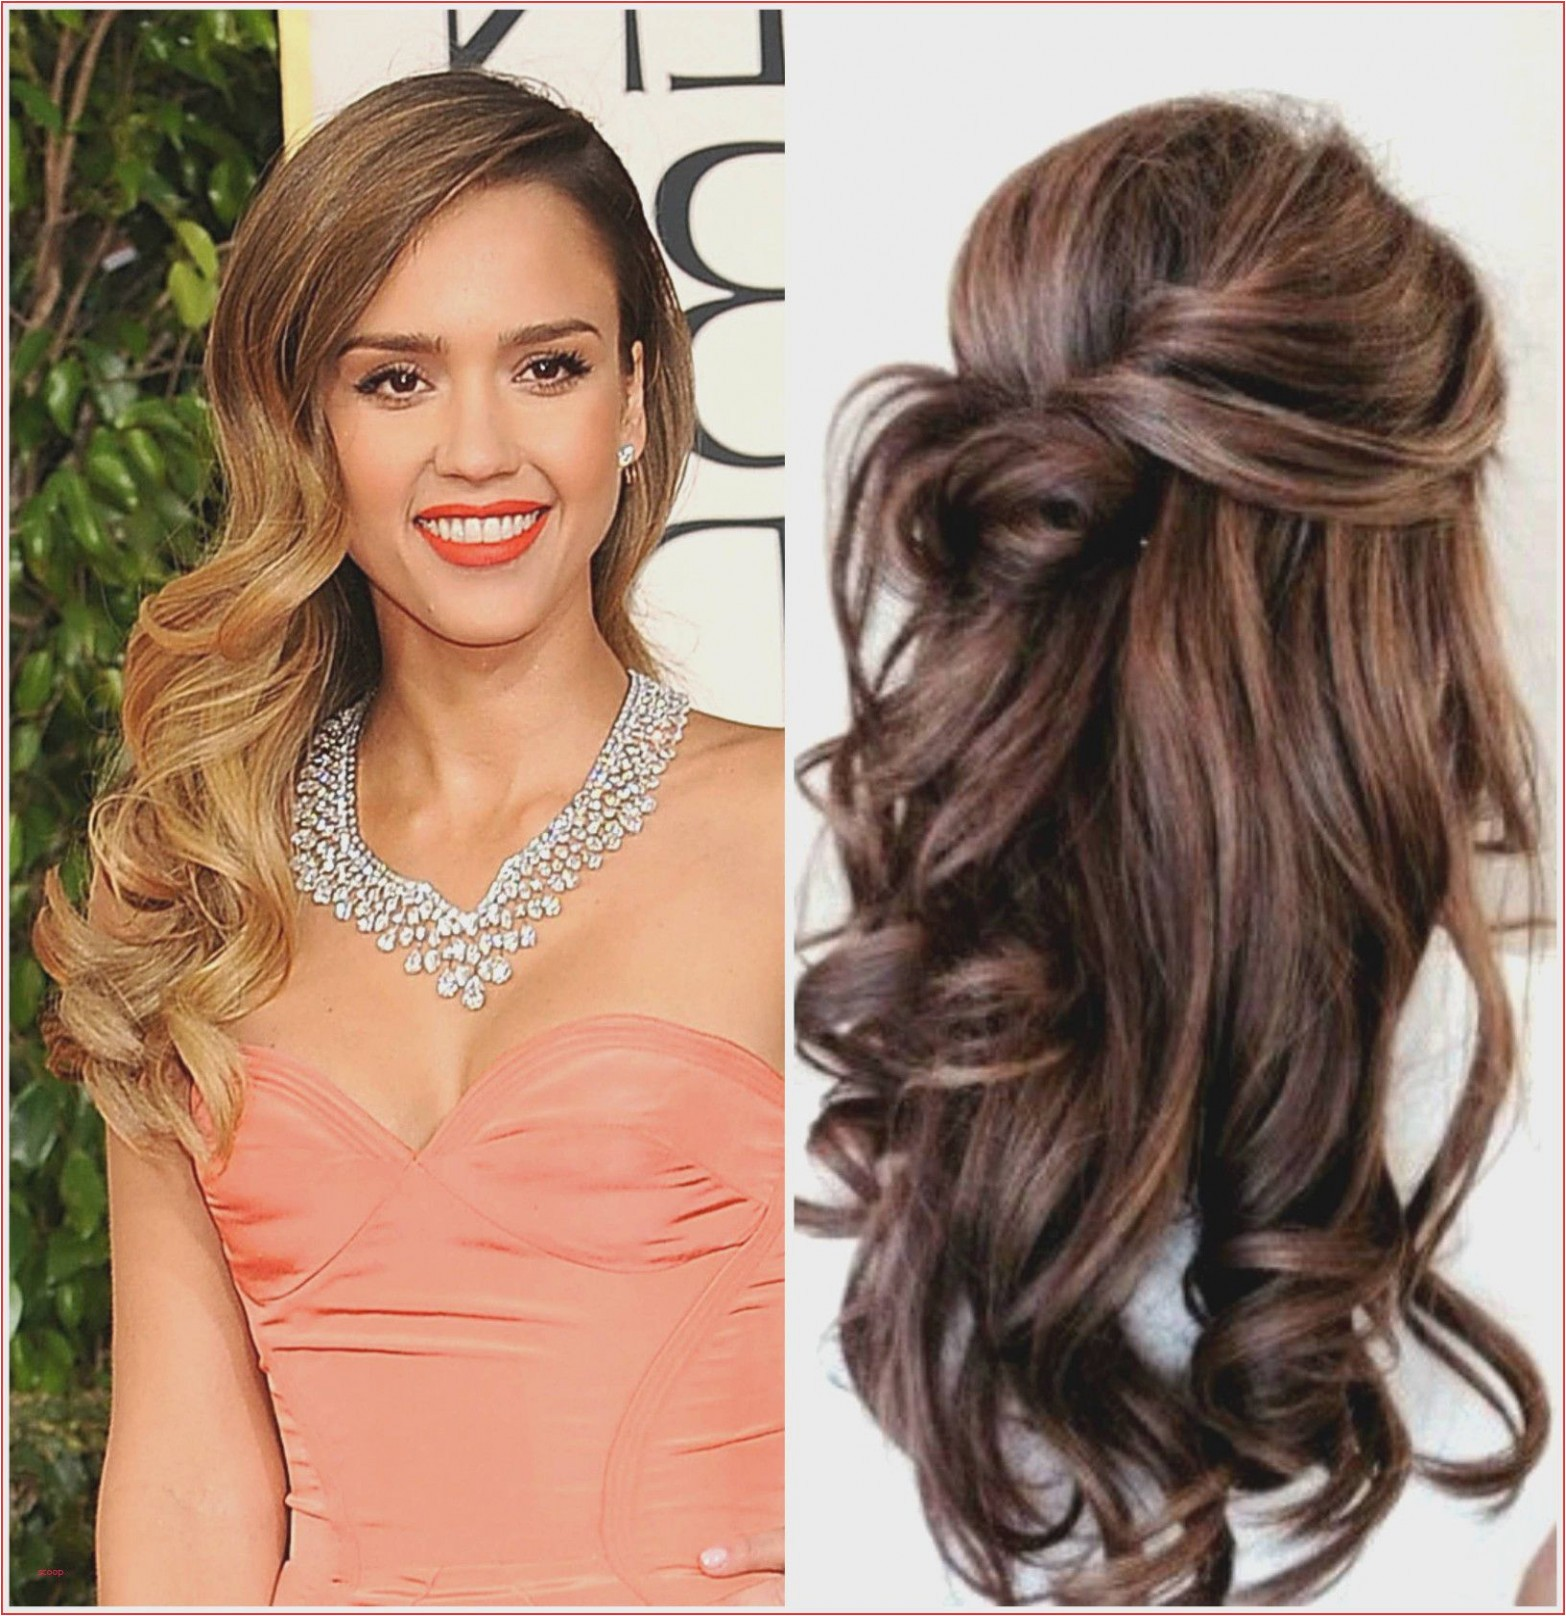 Cute Hairstyles For Girls With Shoulder Length Hair Medium Hairstyles for Girls Elegant Hairstyles for Long